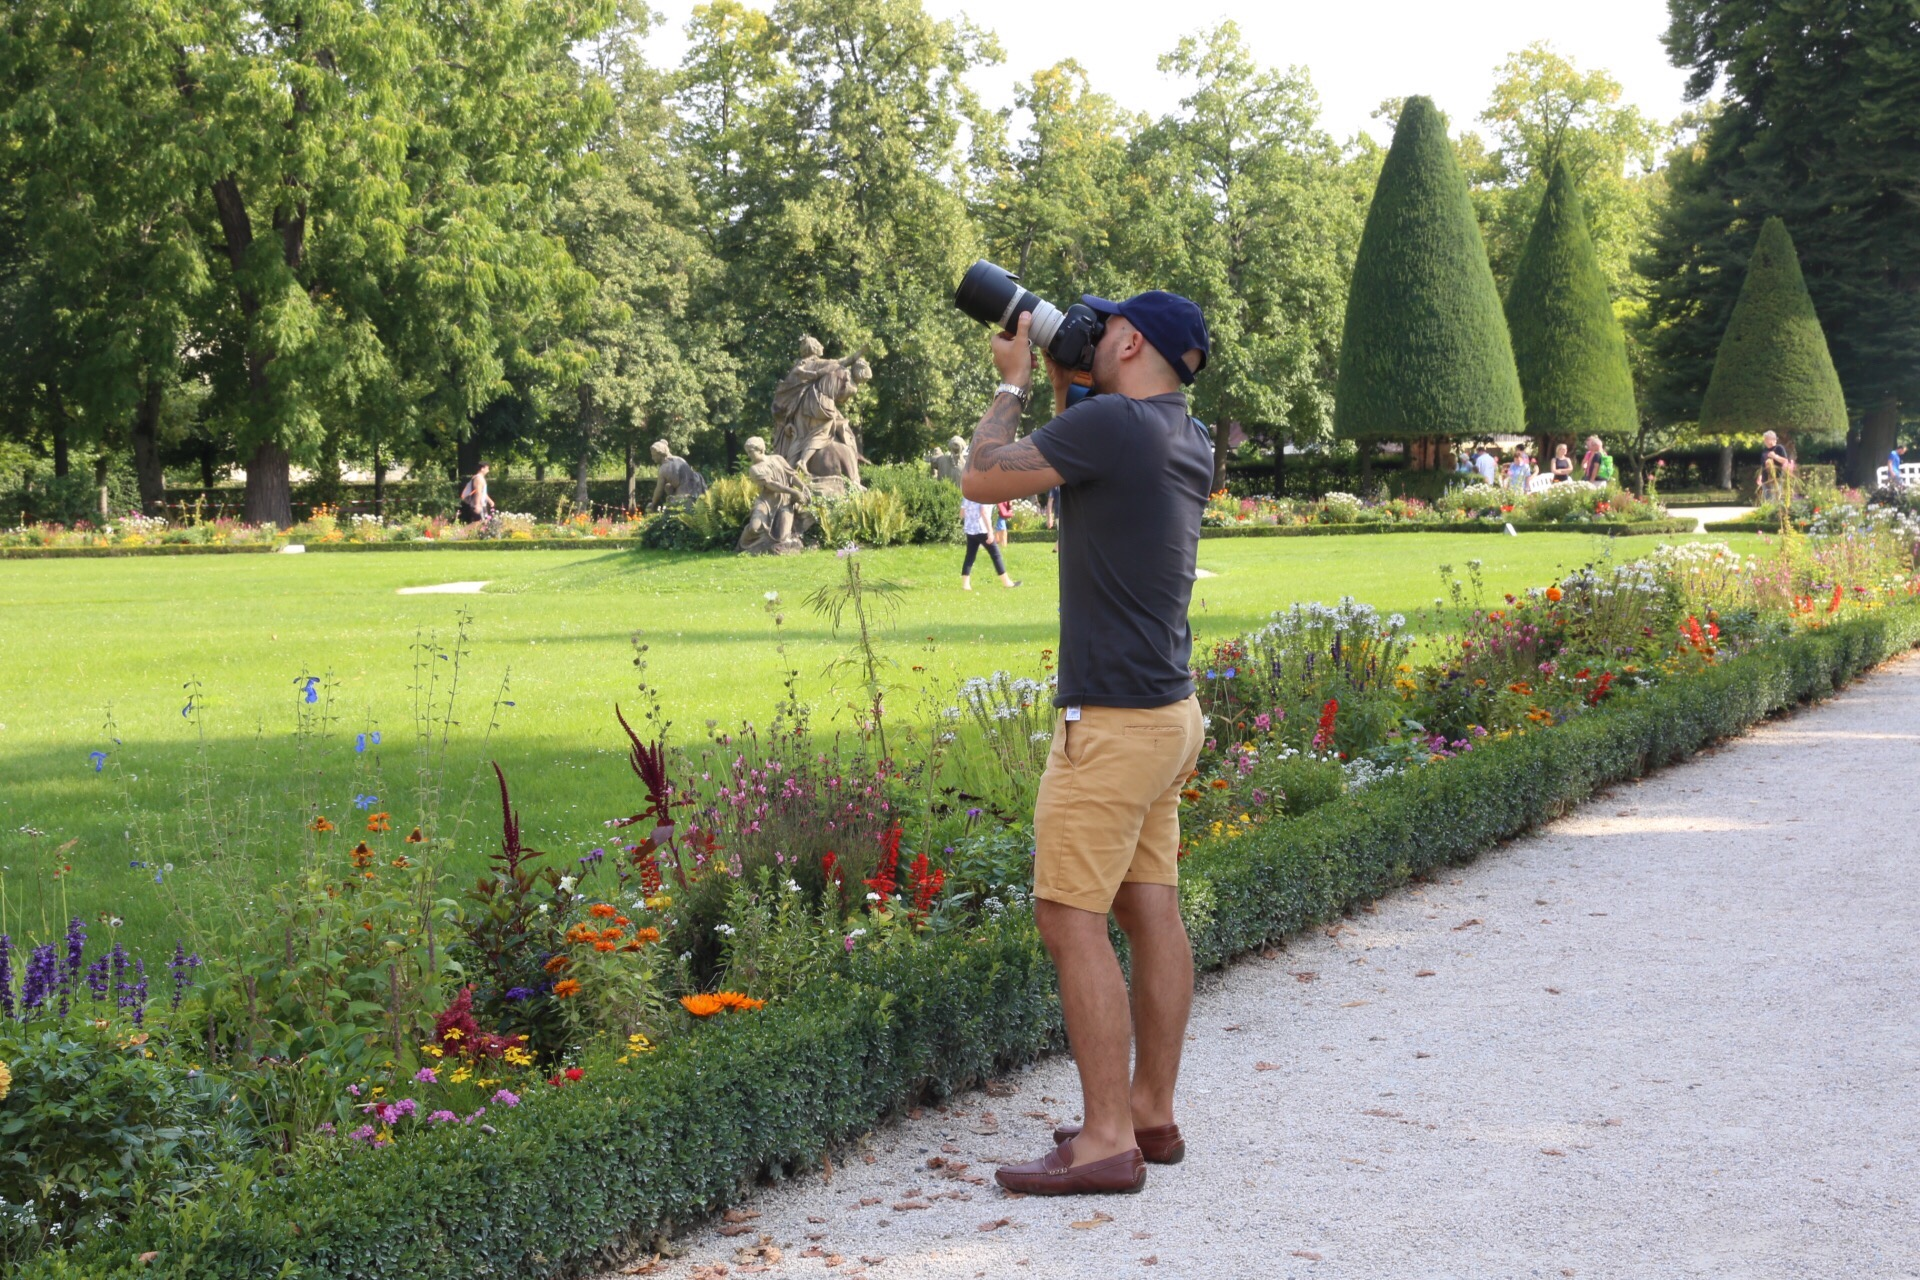 Taking Pictures in Wurzburg Residenz Garden